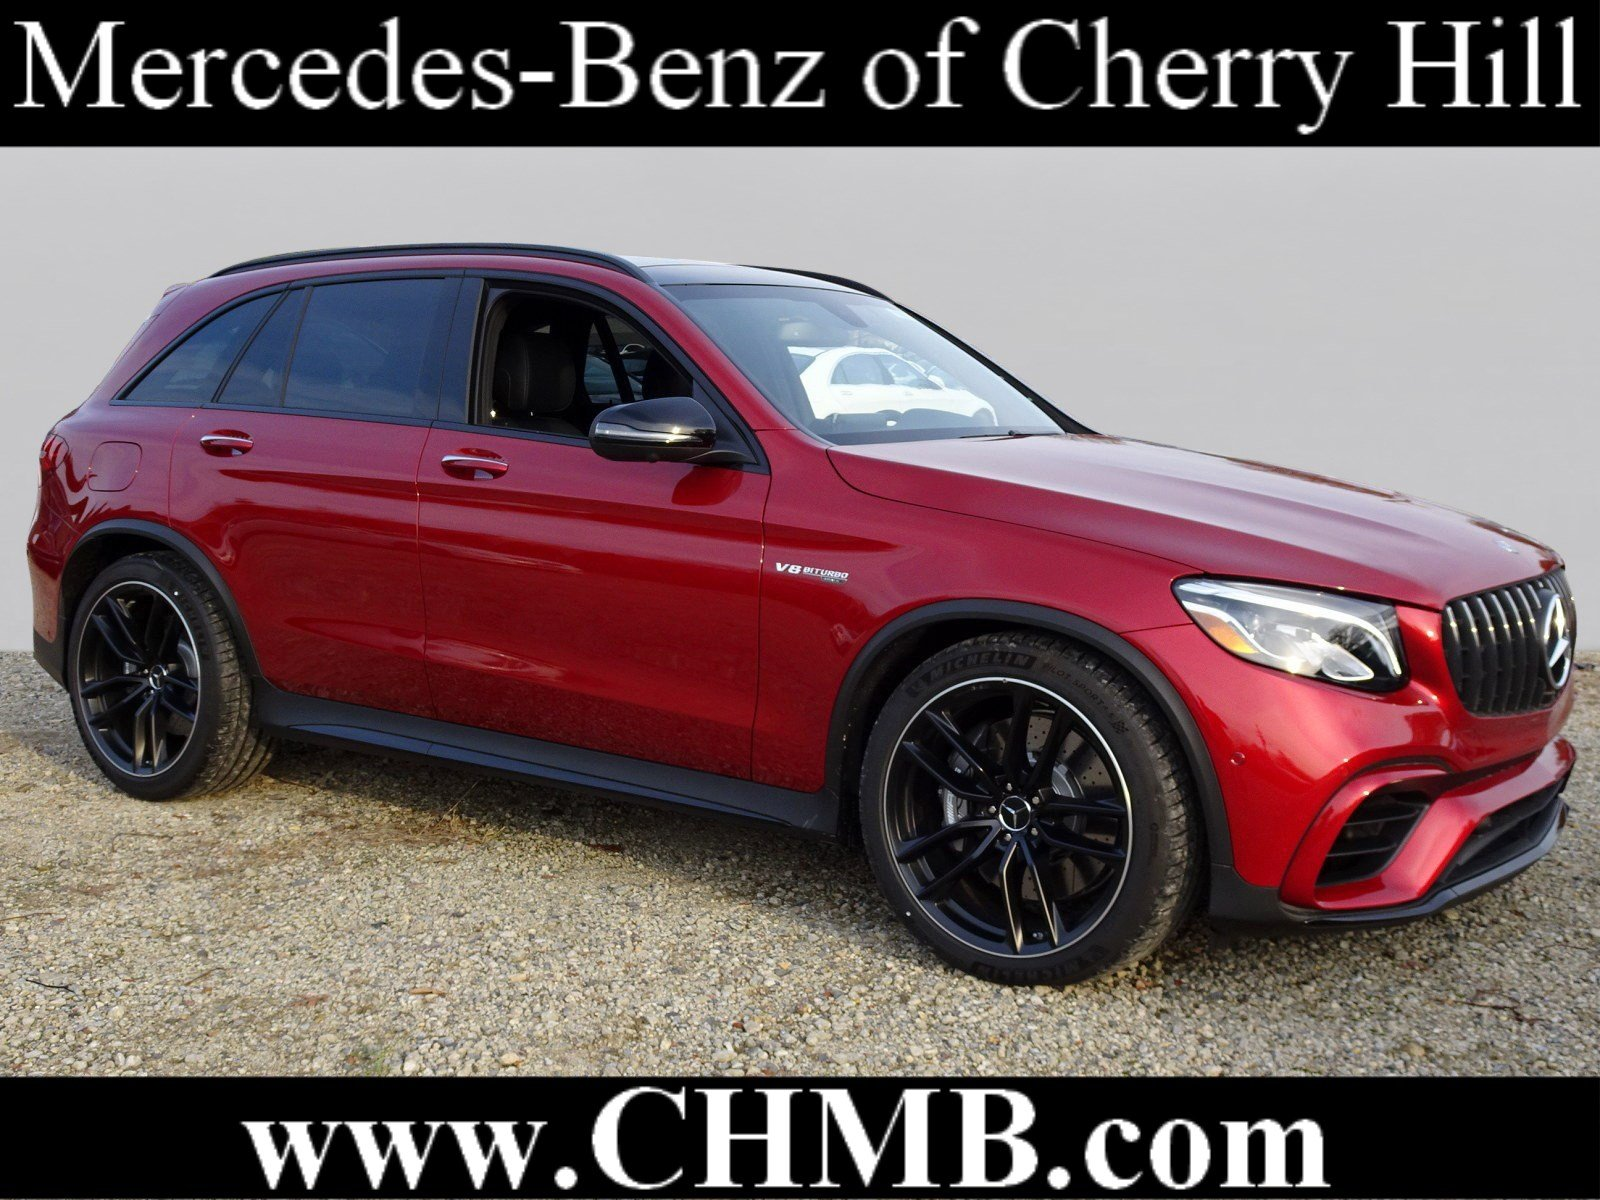 New 2019 Mercedes Benz GLC AMG GLC 63 SUV SUV in Cherry Hill M2569